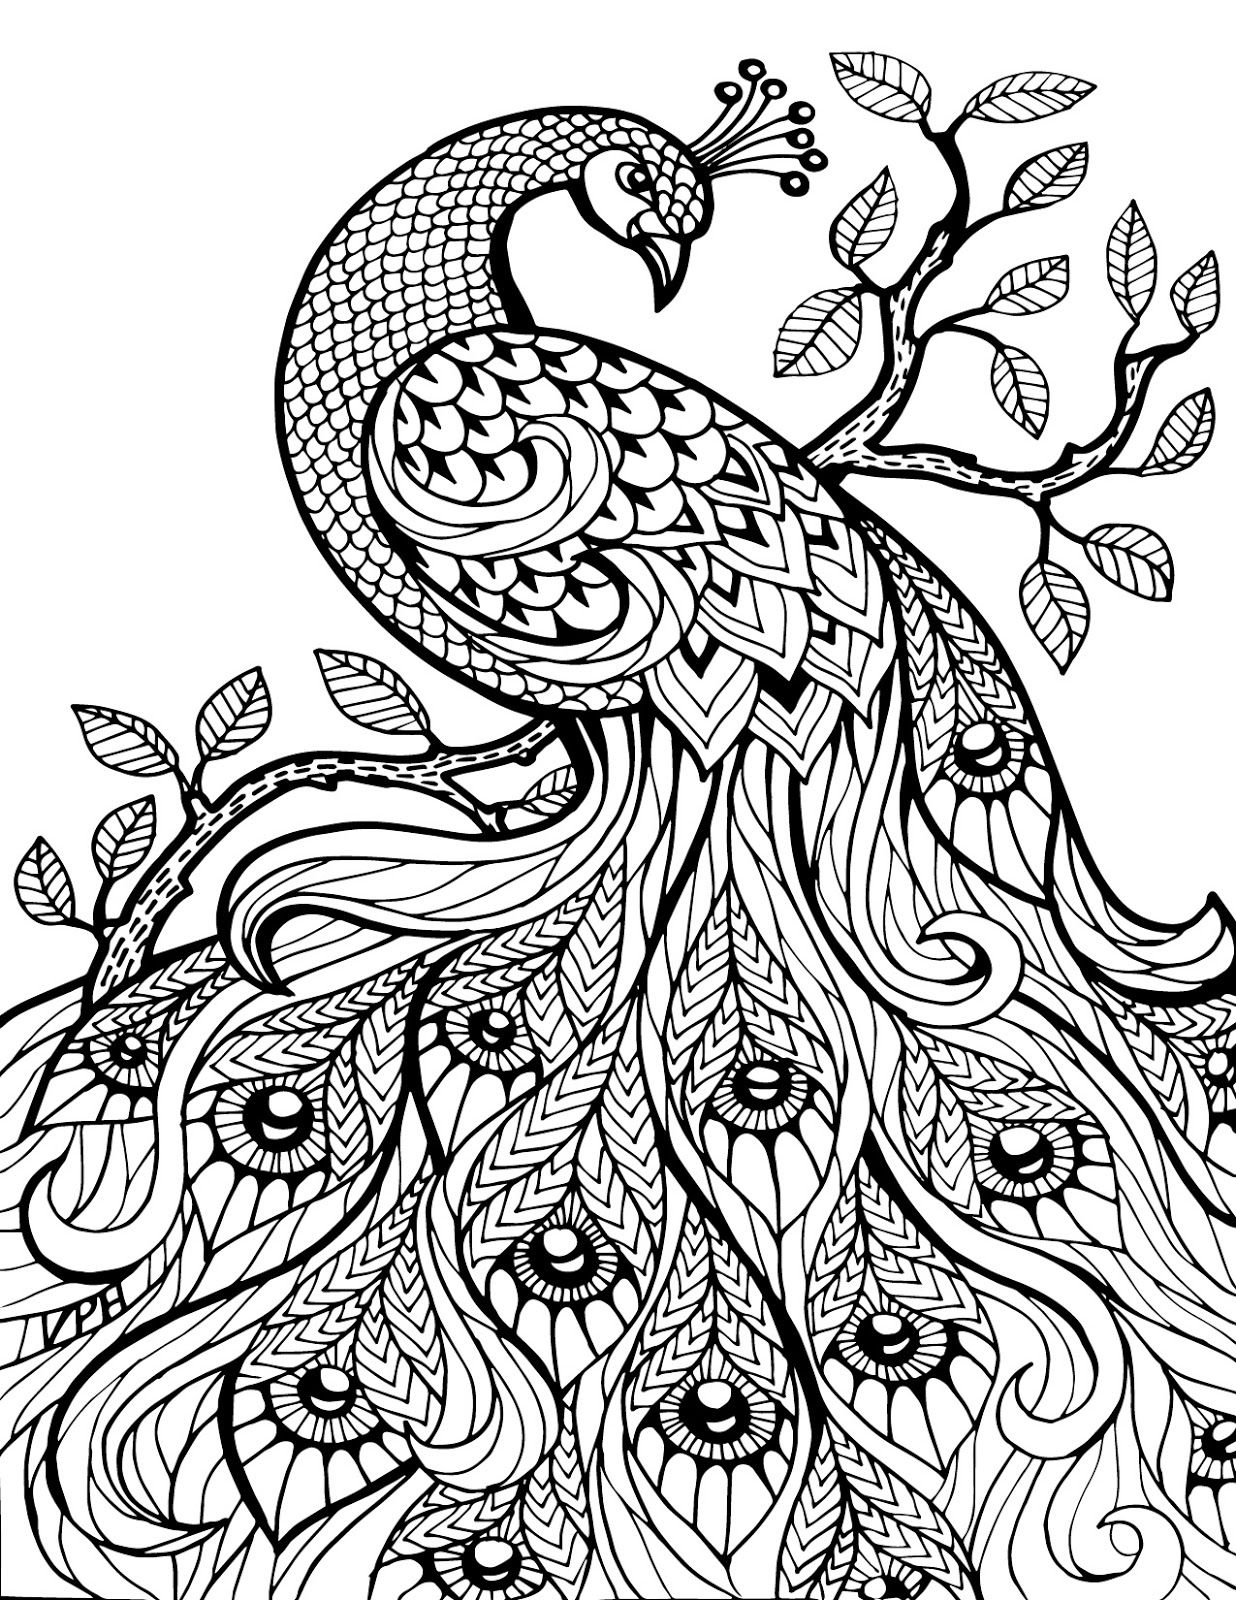 Explore Coloring Pages For Adults and more